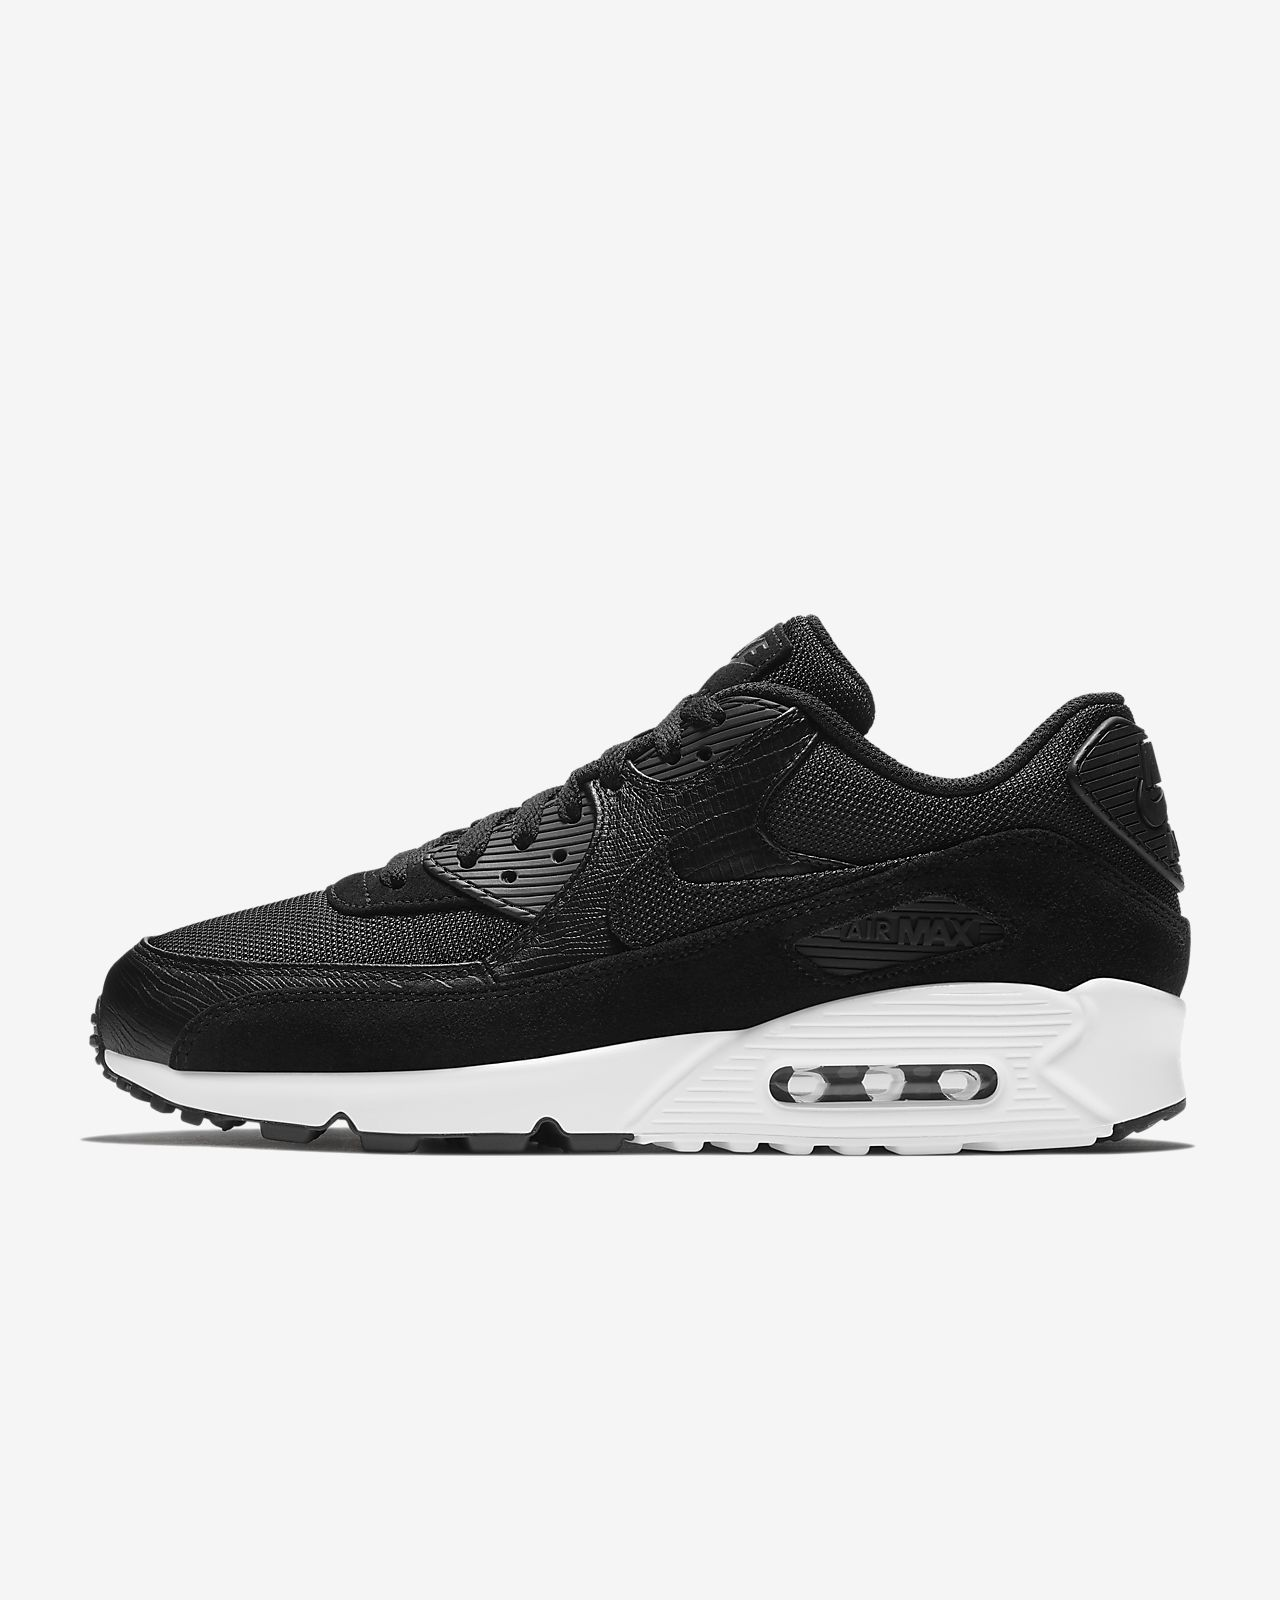 Nike Air Max 90 Premium – For fashion conscious person